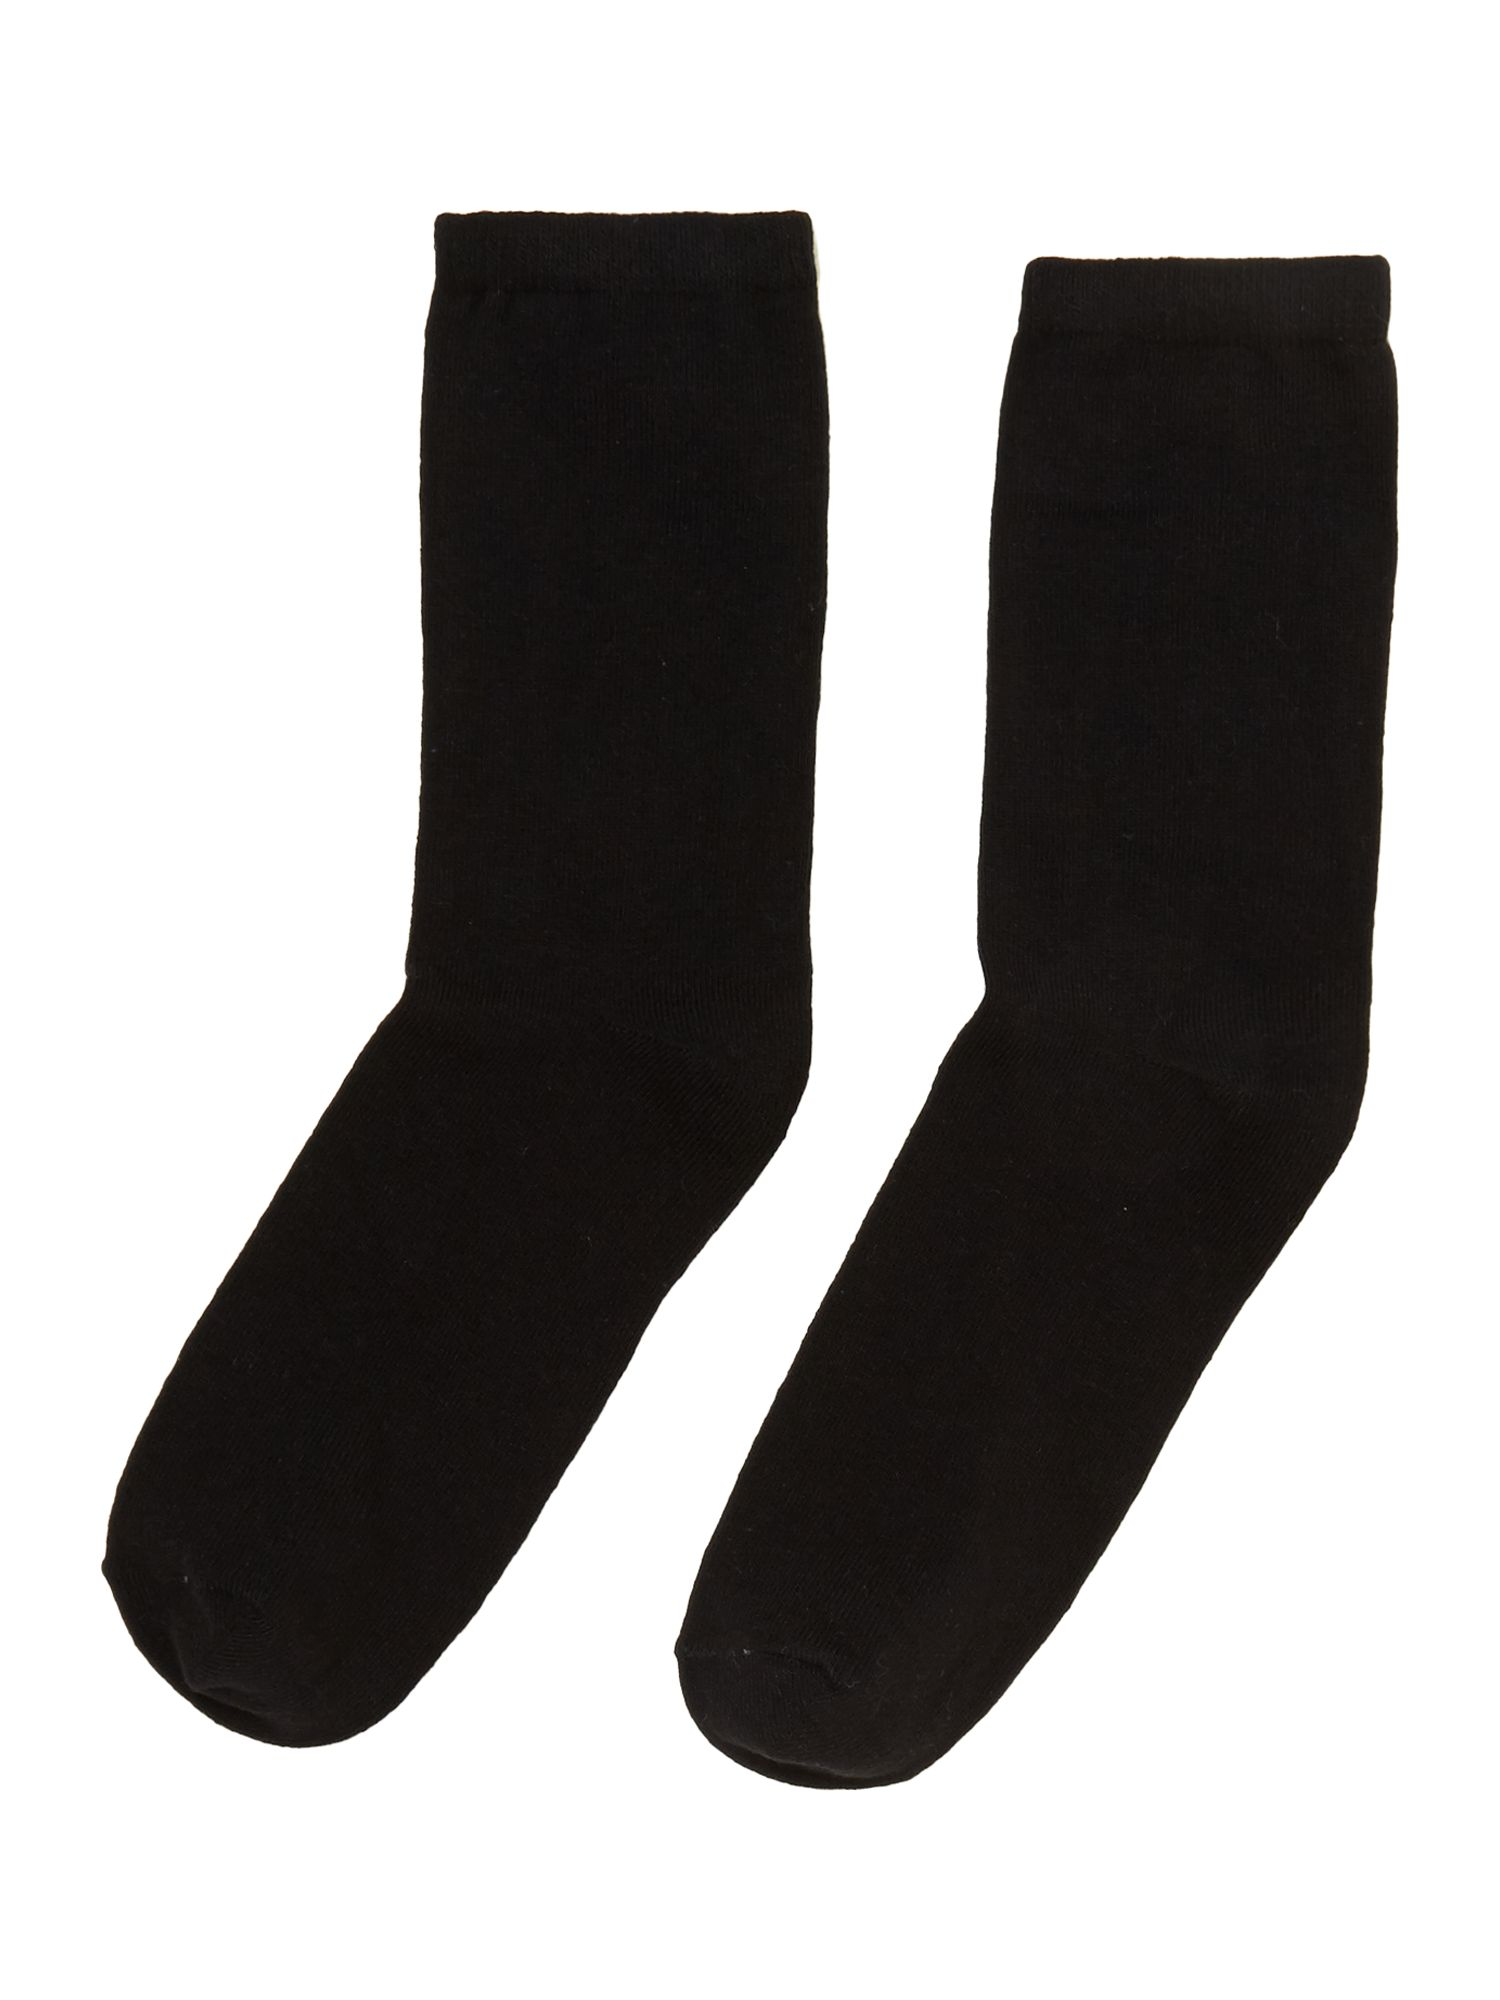 2PP Cotton socks